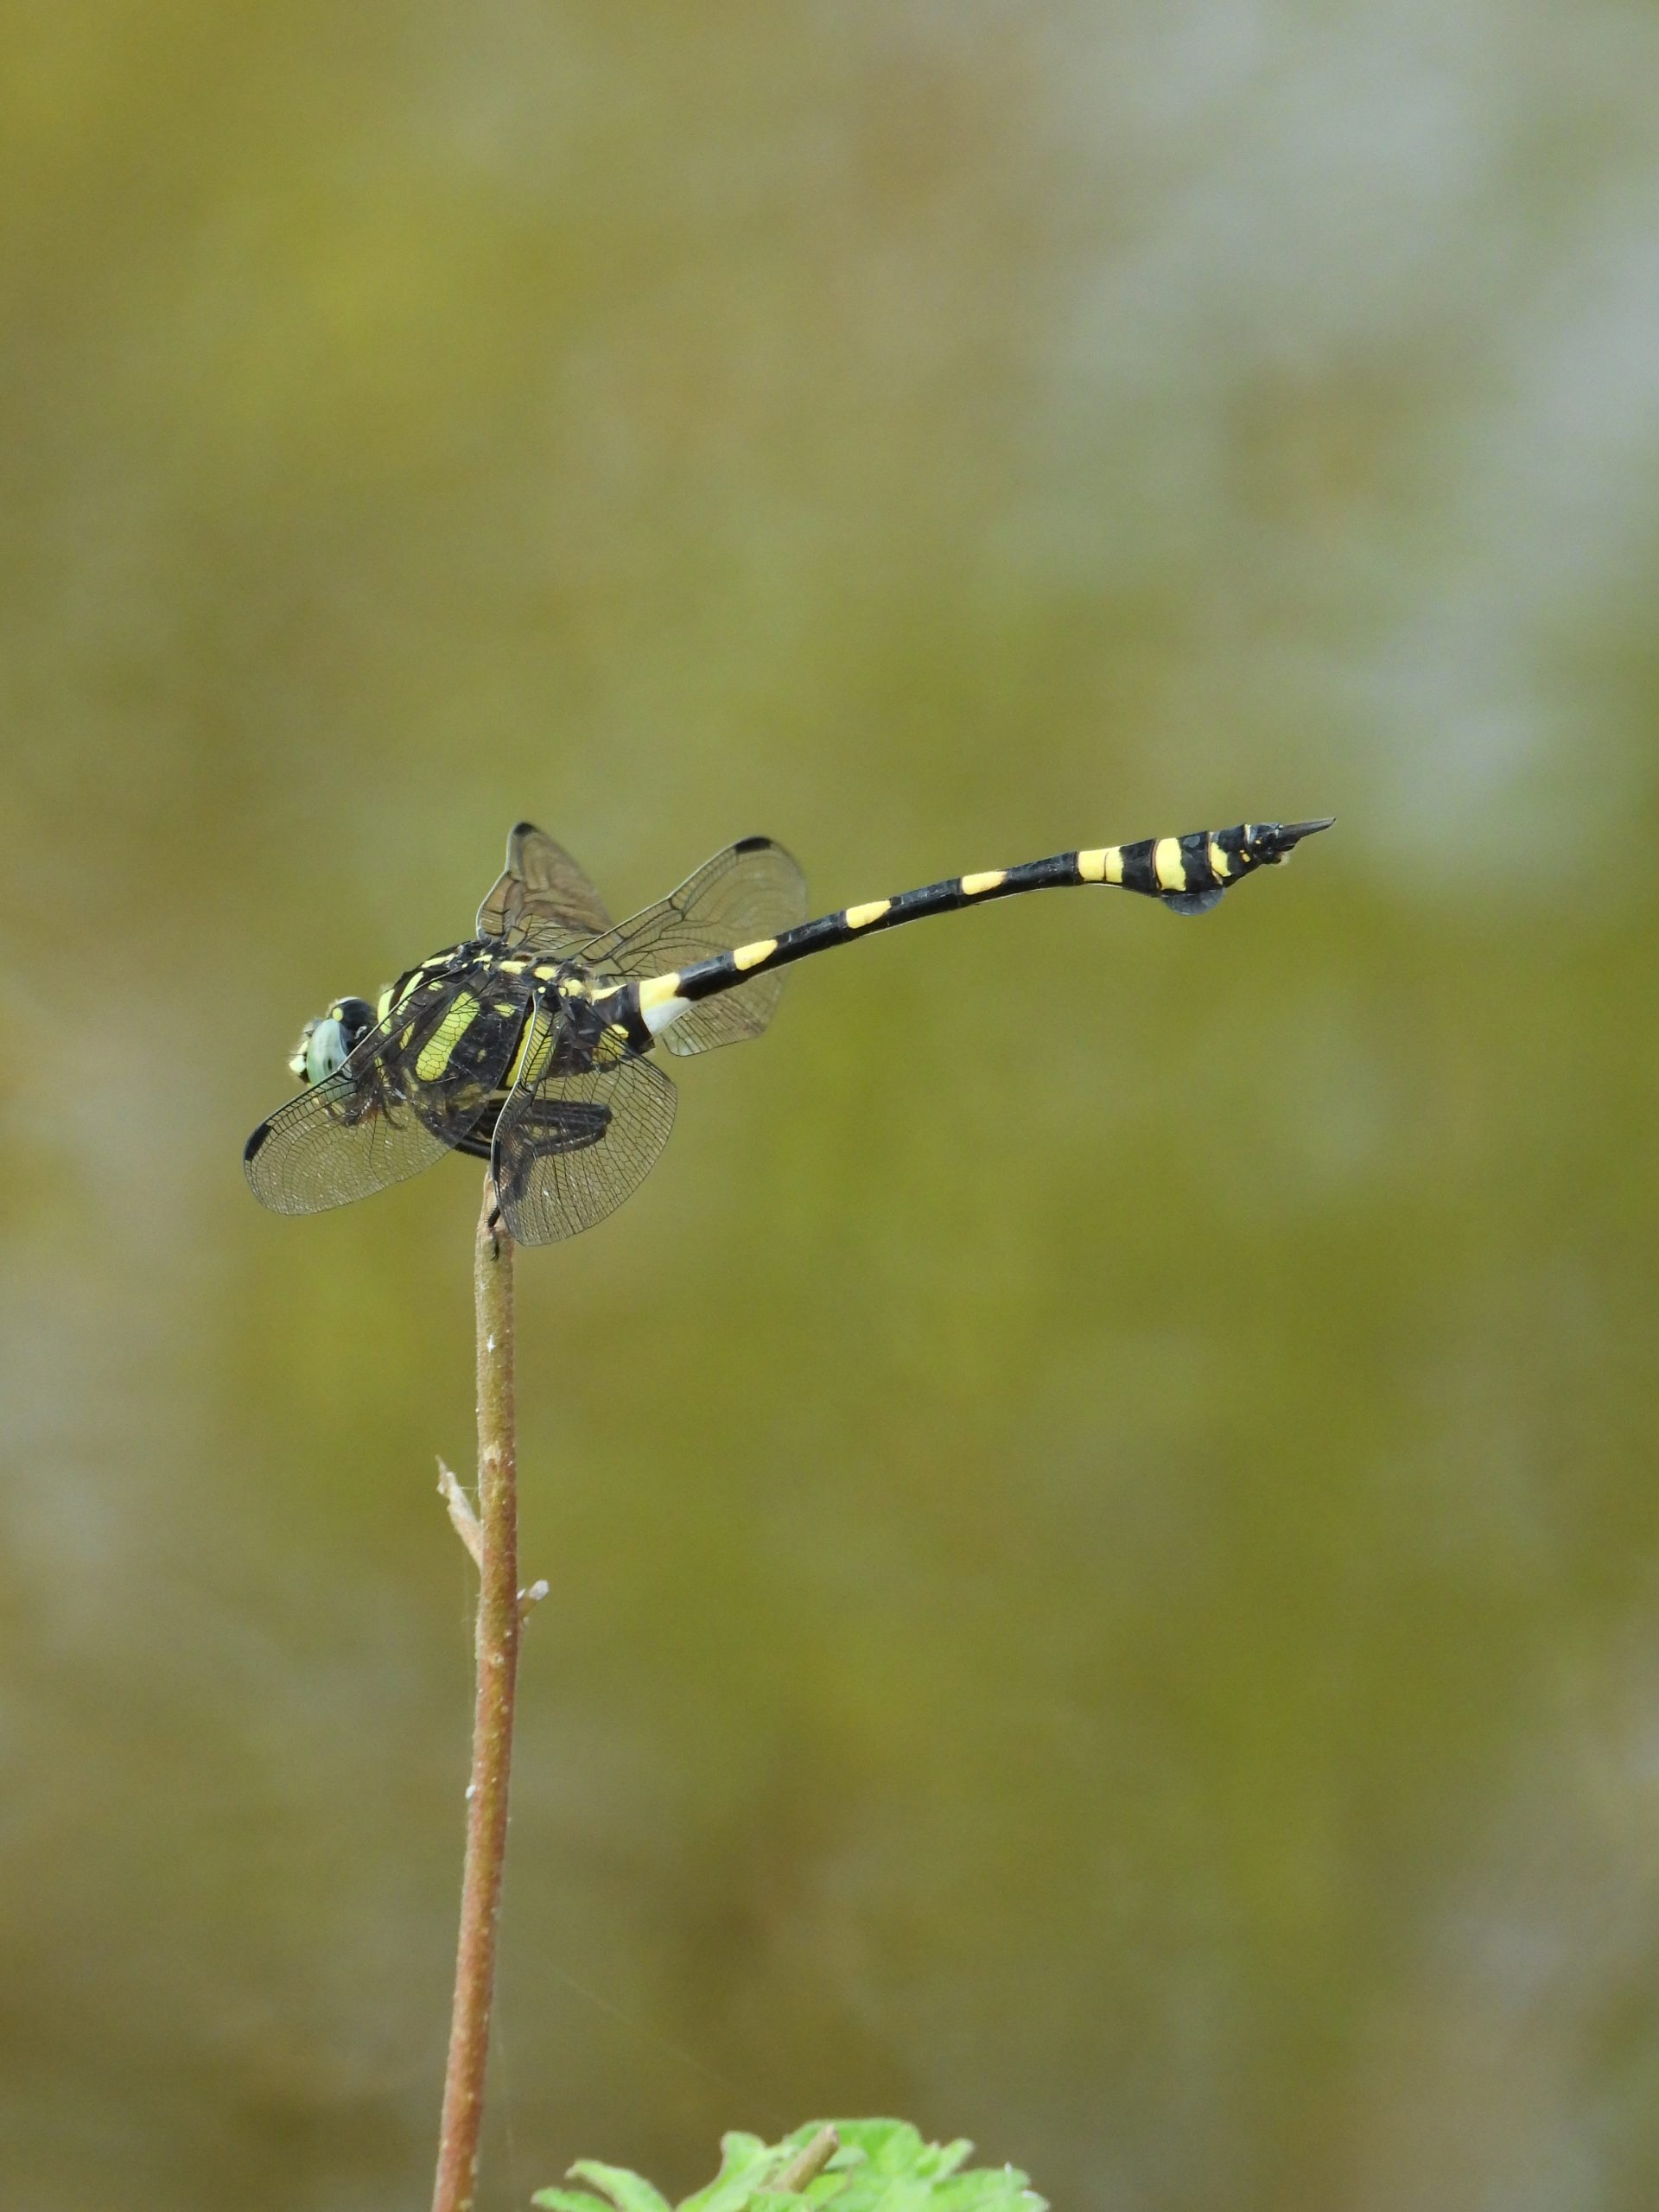 A tiger dragonfly on a twig